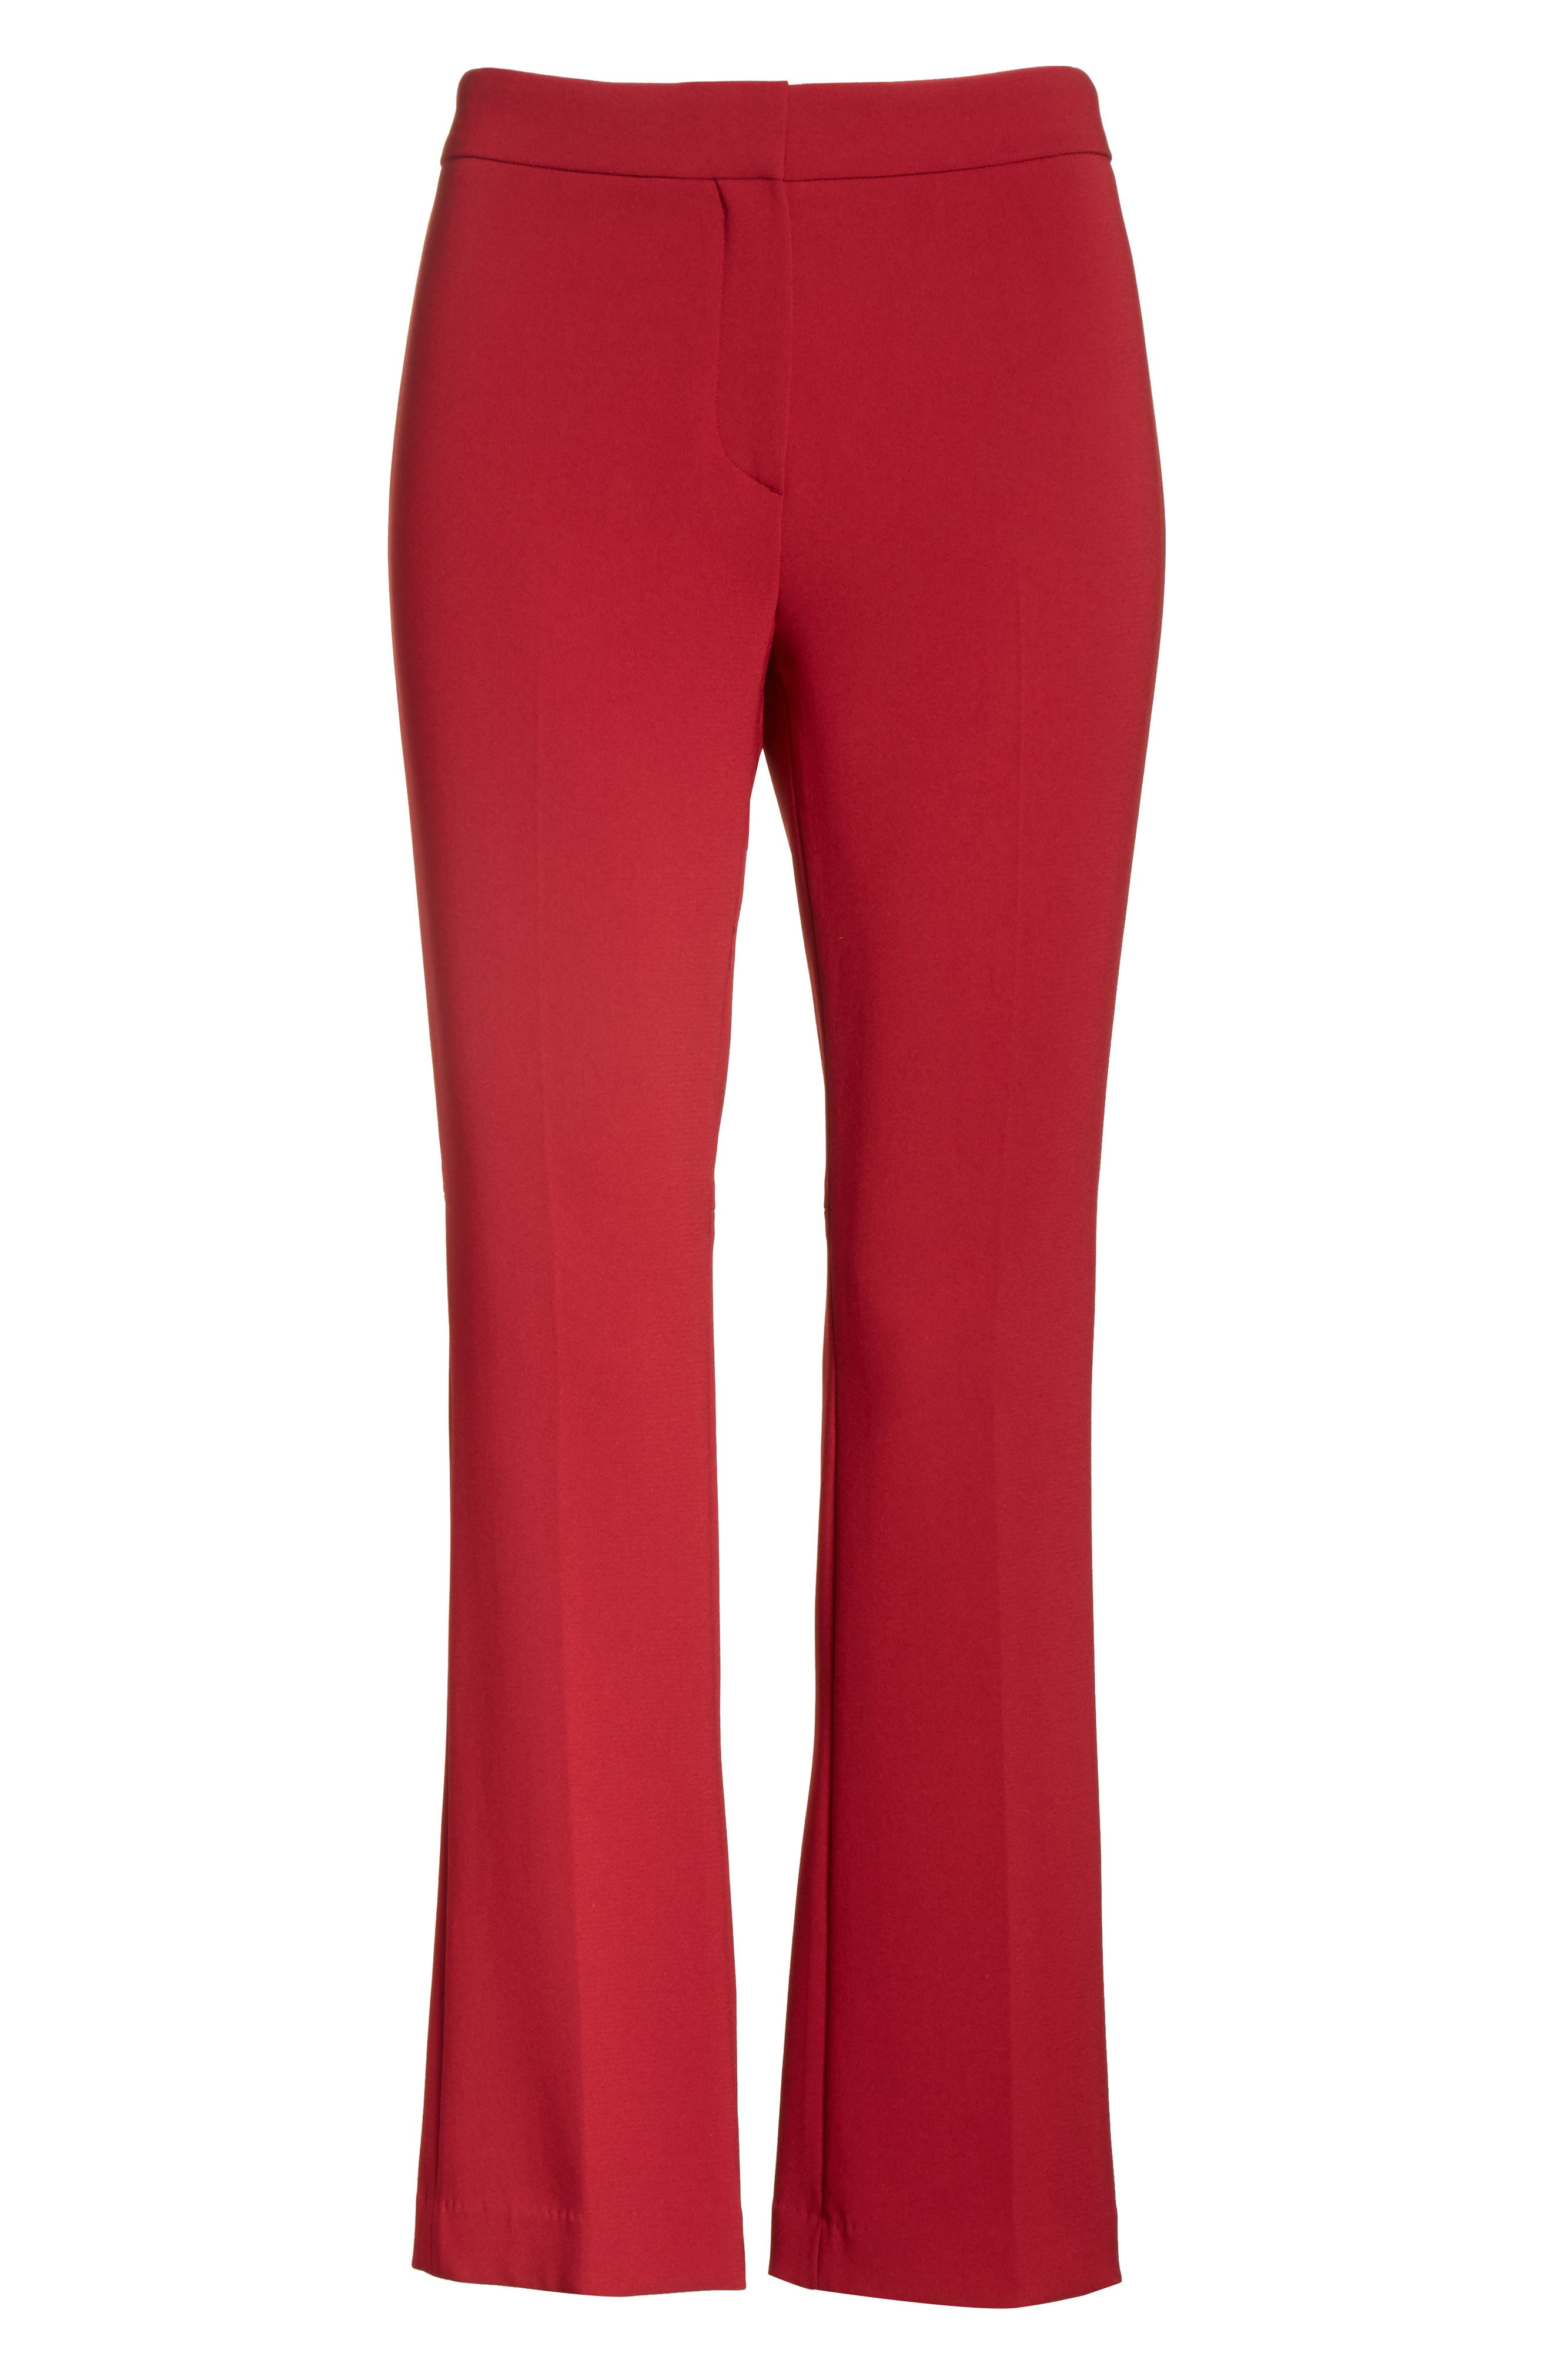 Admiral Crepe Kick Crop Pants,                             Alternate thumbnail 6, color,                             632